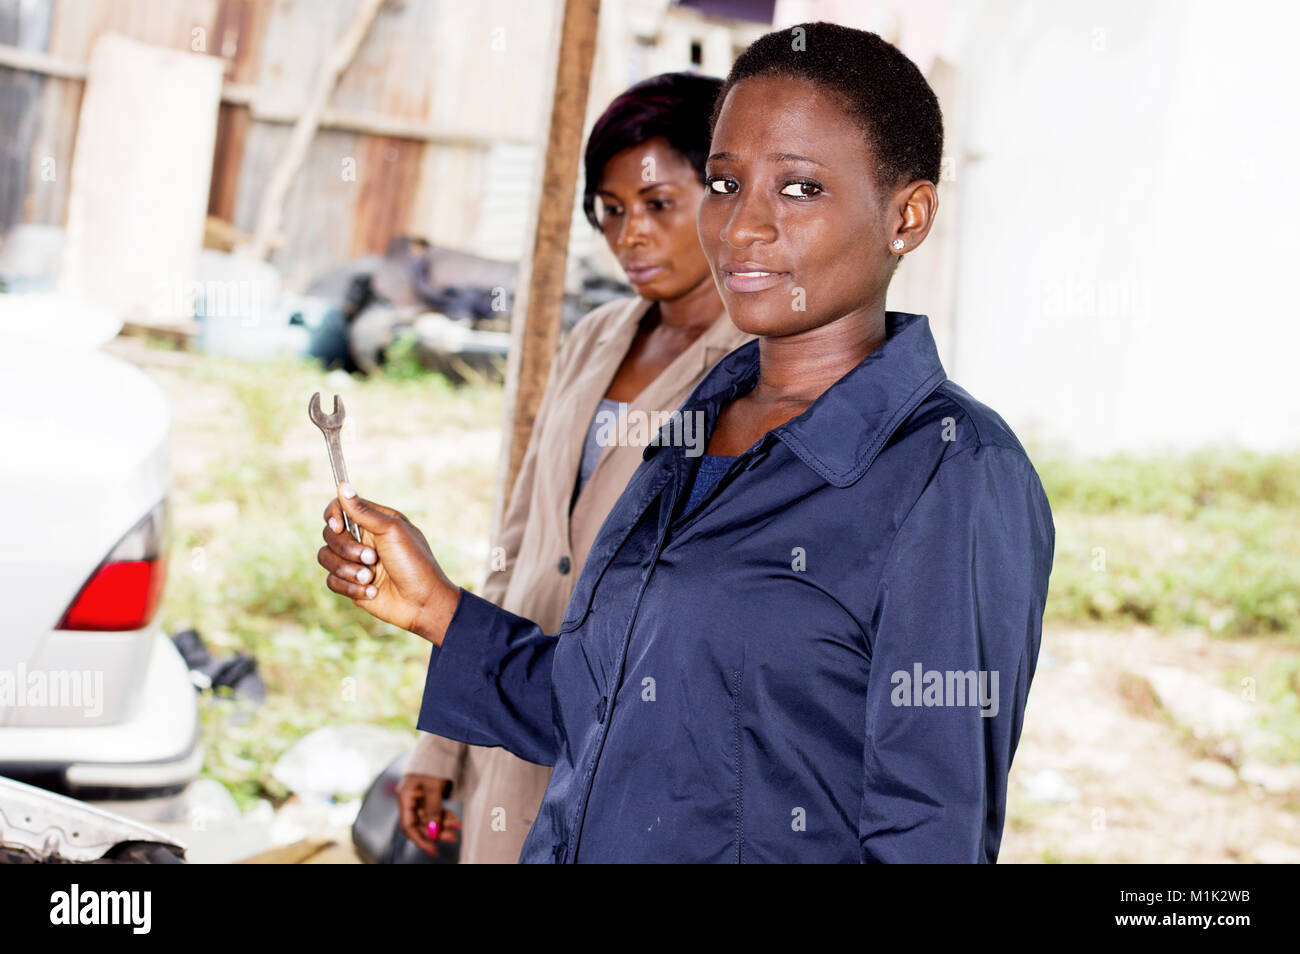 Young woman mechanic holds a key next to the owner of this car. - Stock Image